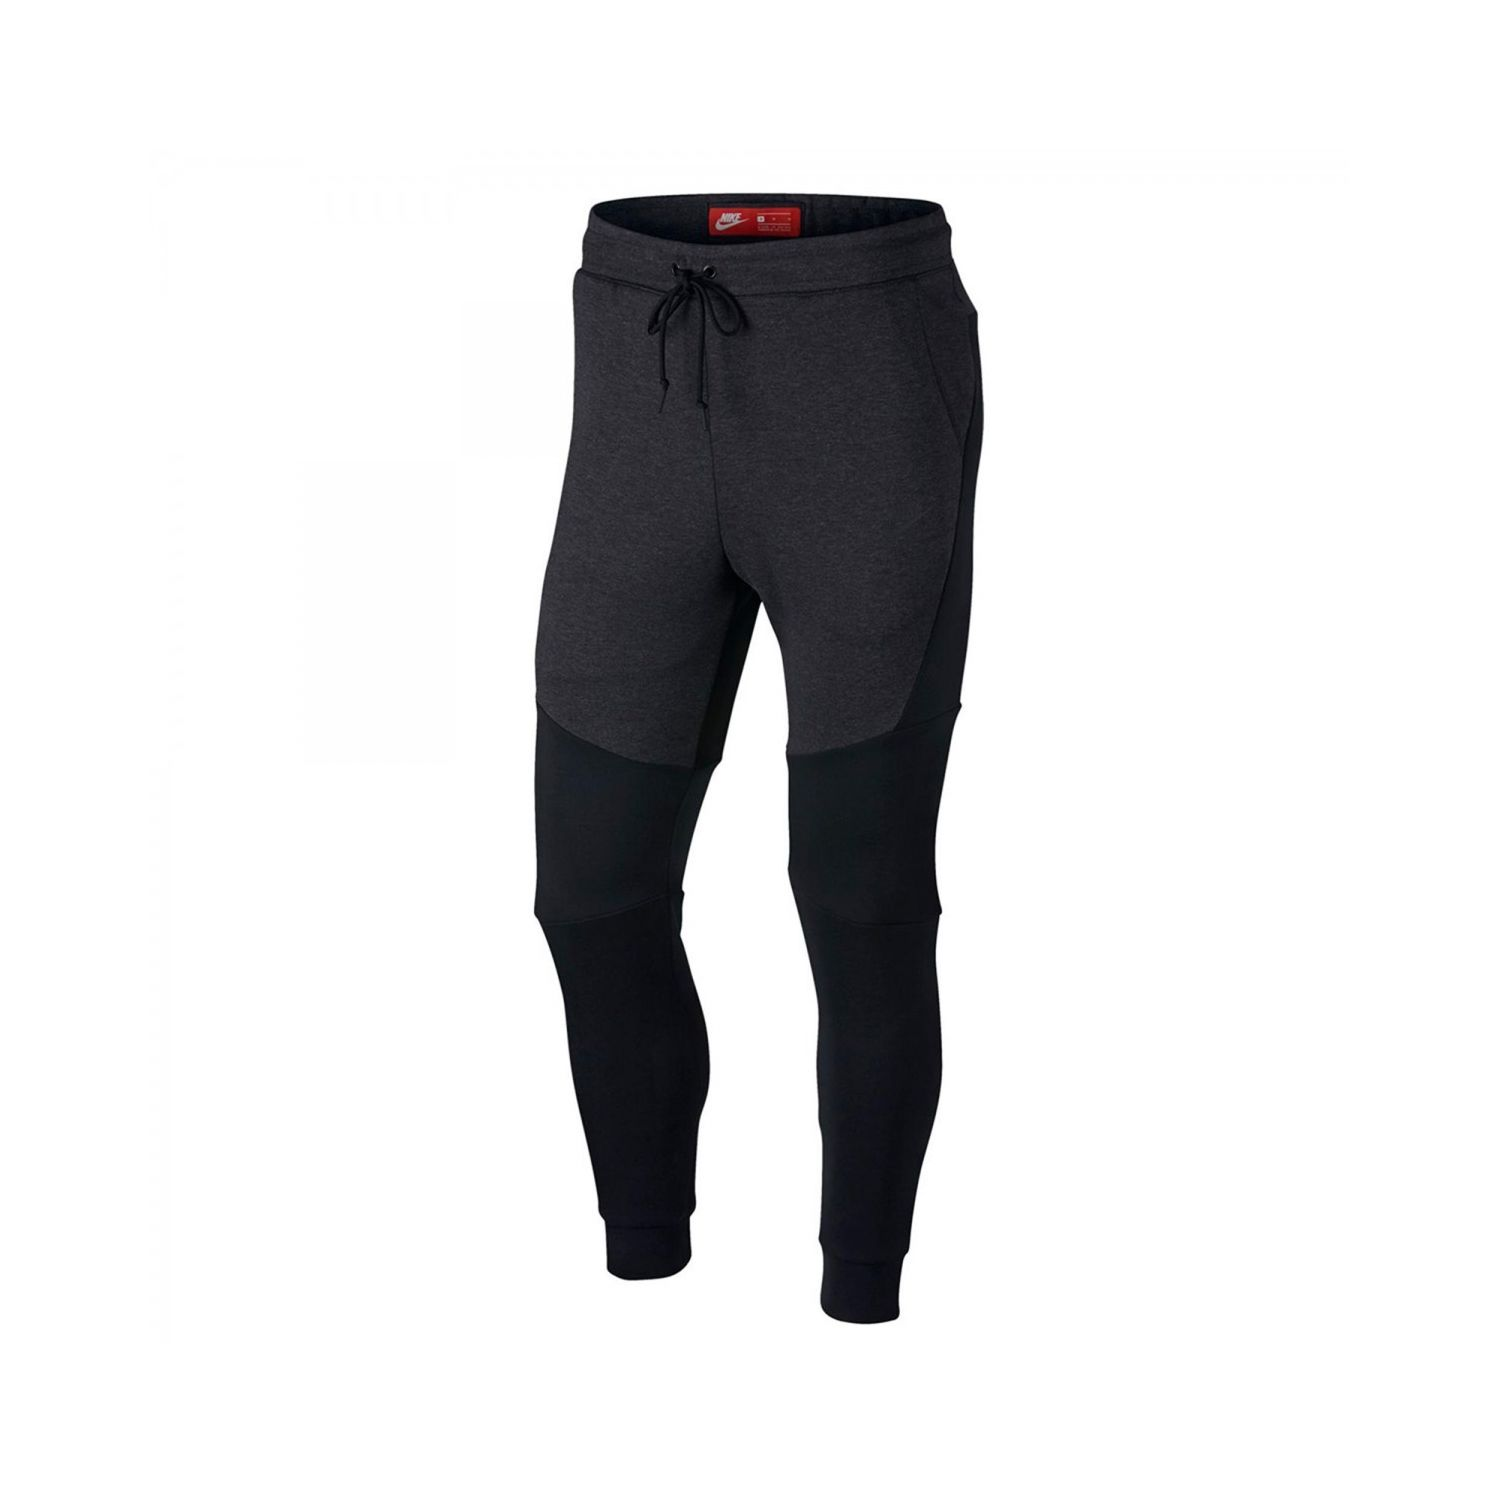 eeffac6f7a5 NIKE- Pantalon de survêtement Tech Fleece - 805162-011 - Noir - XL